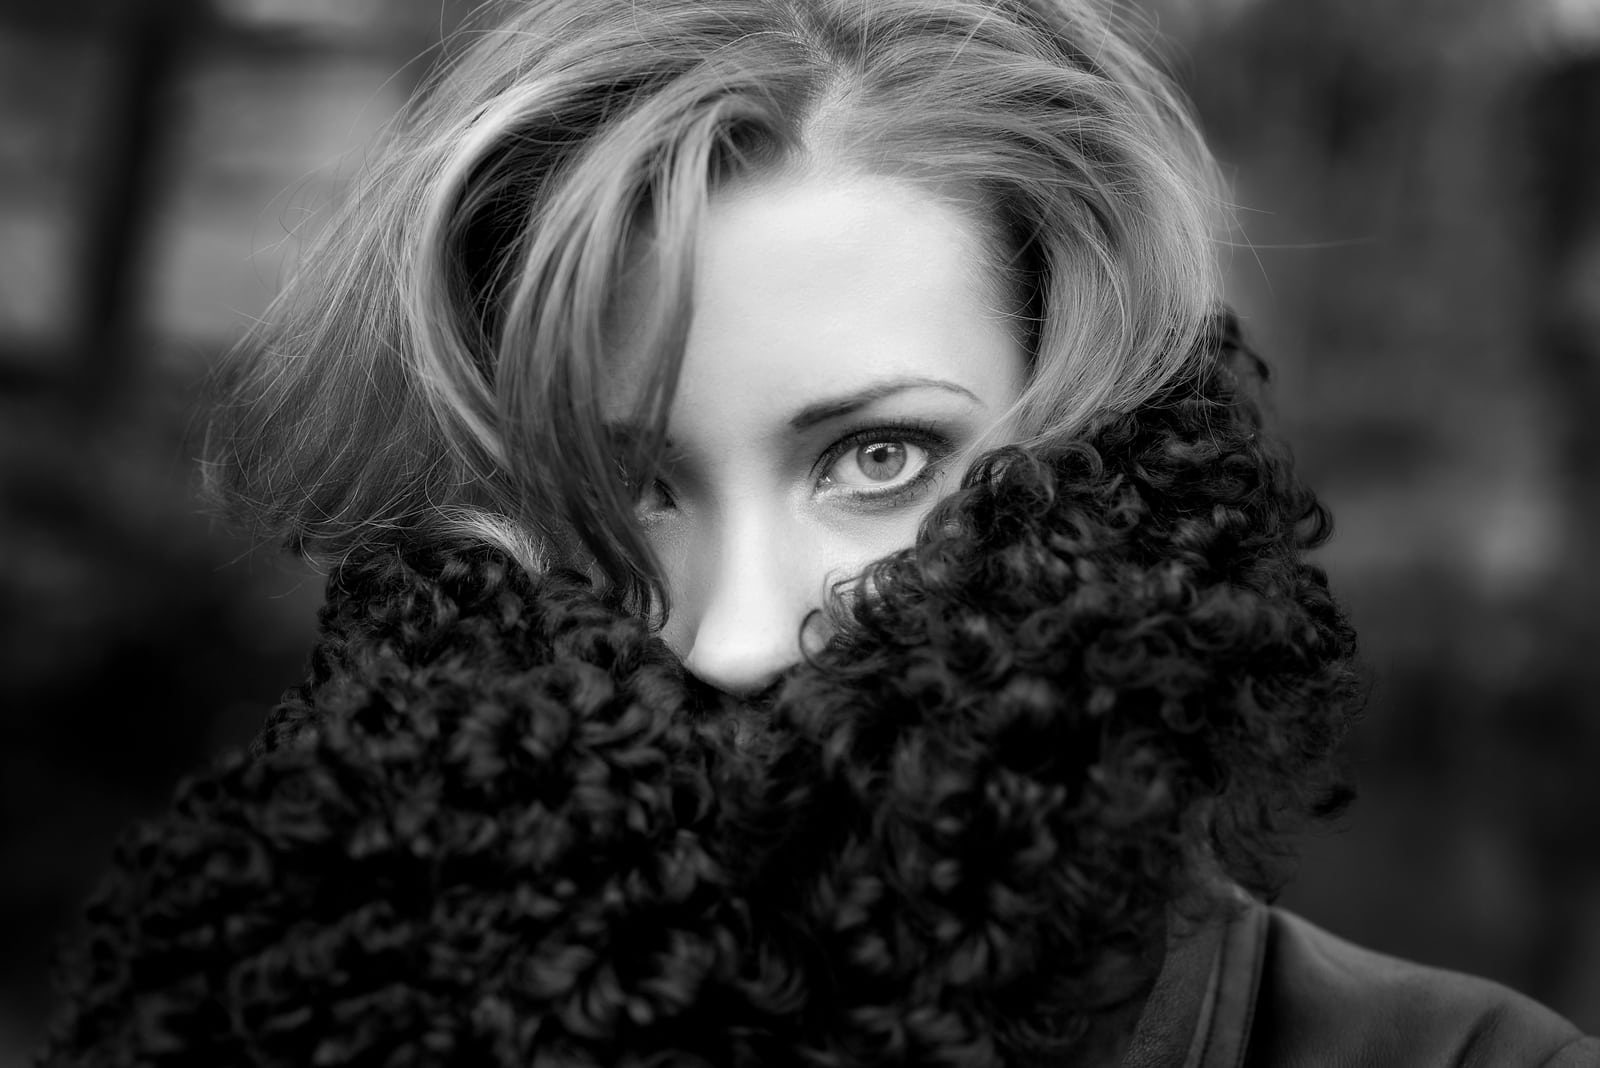 Black and white outdoor portrait of young woman